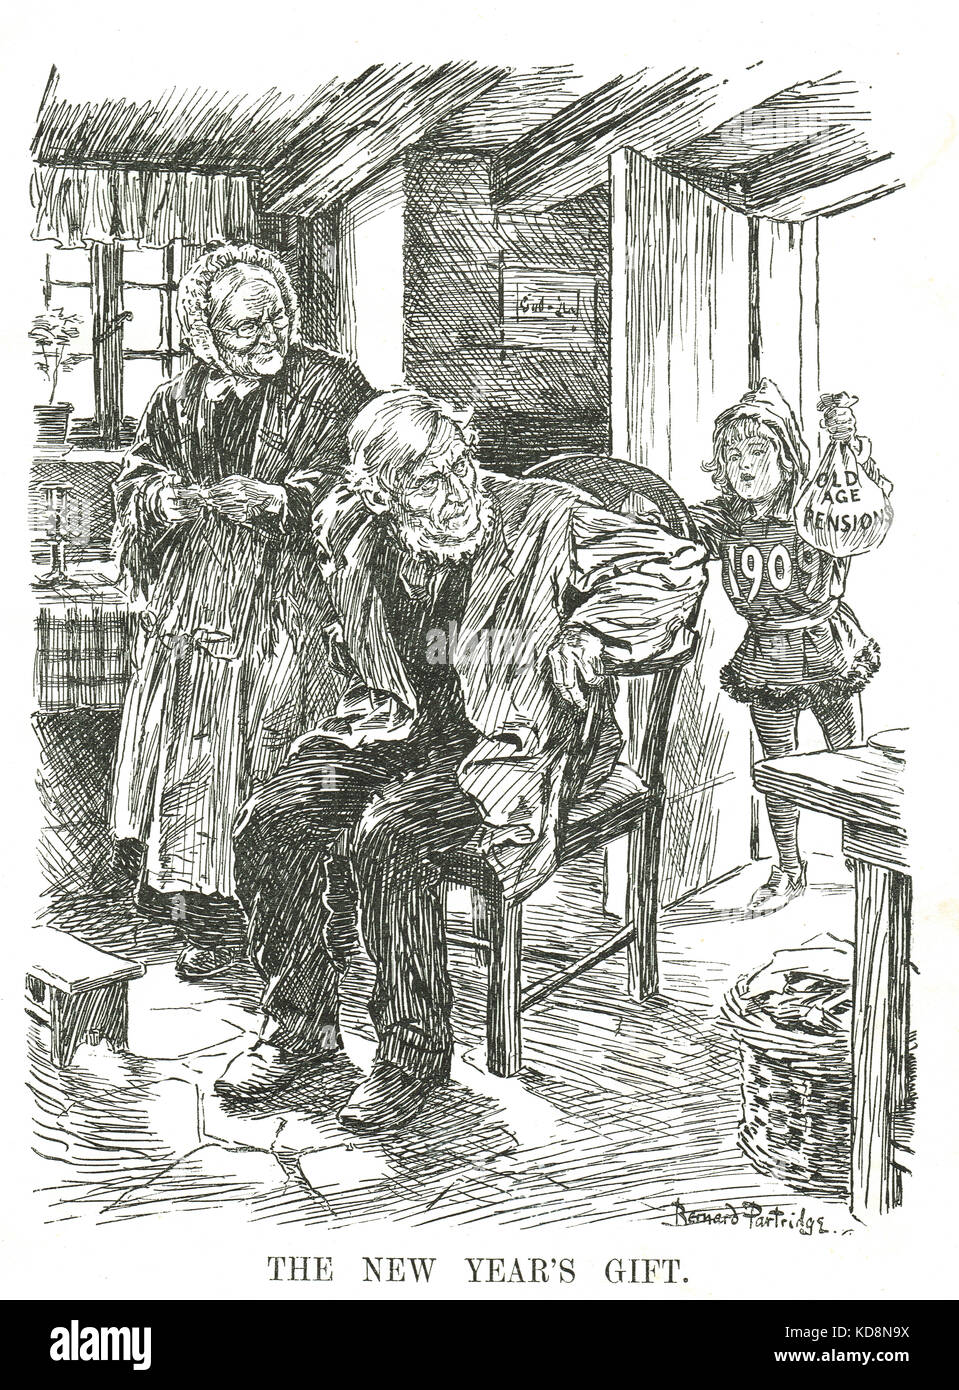 Introduction of Old Age Pensions in 1909 - Stock Image